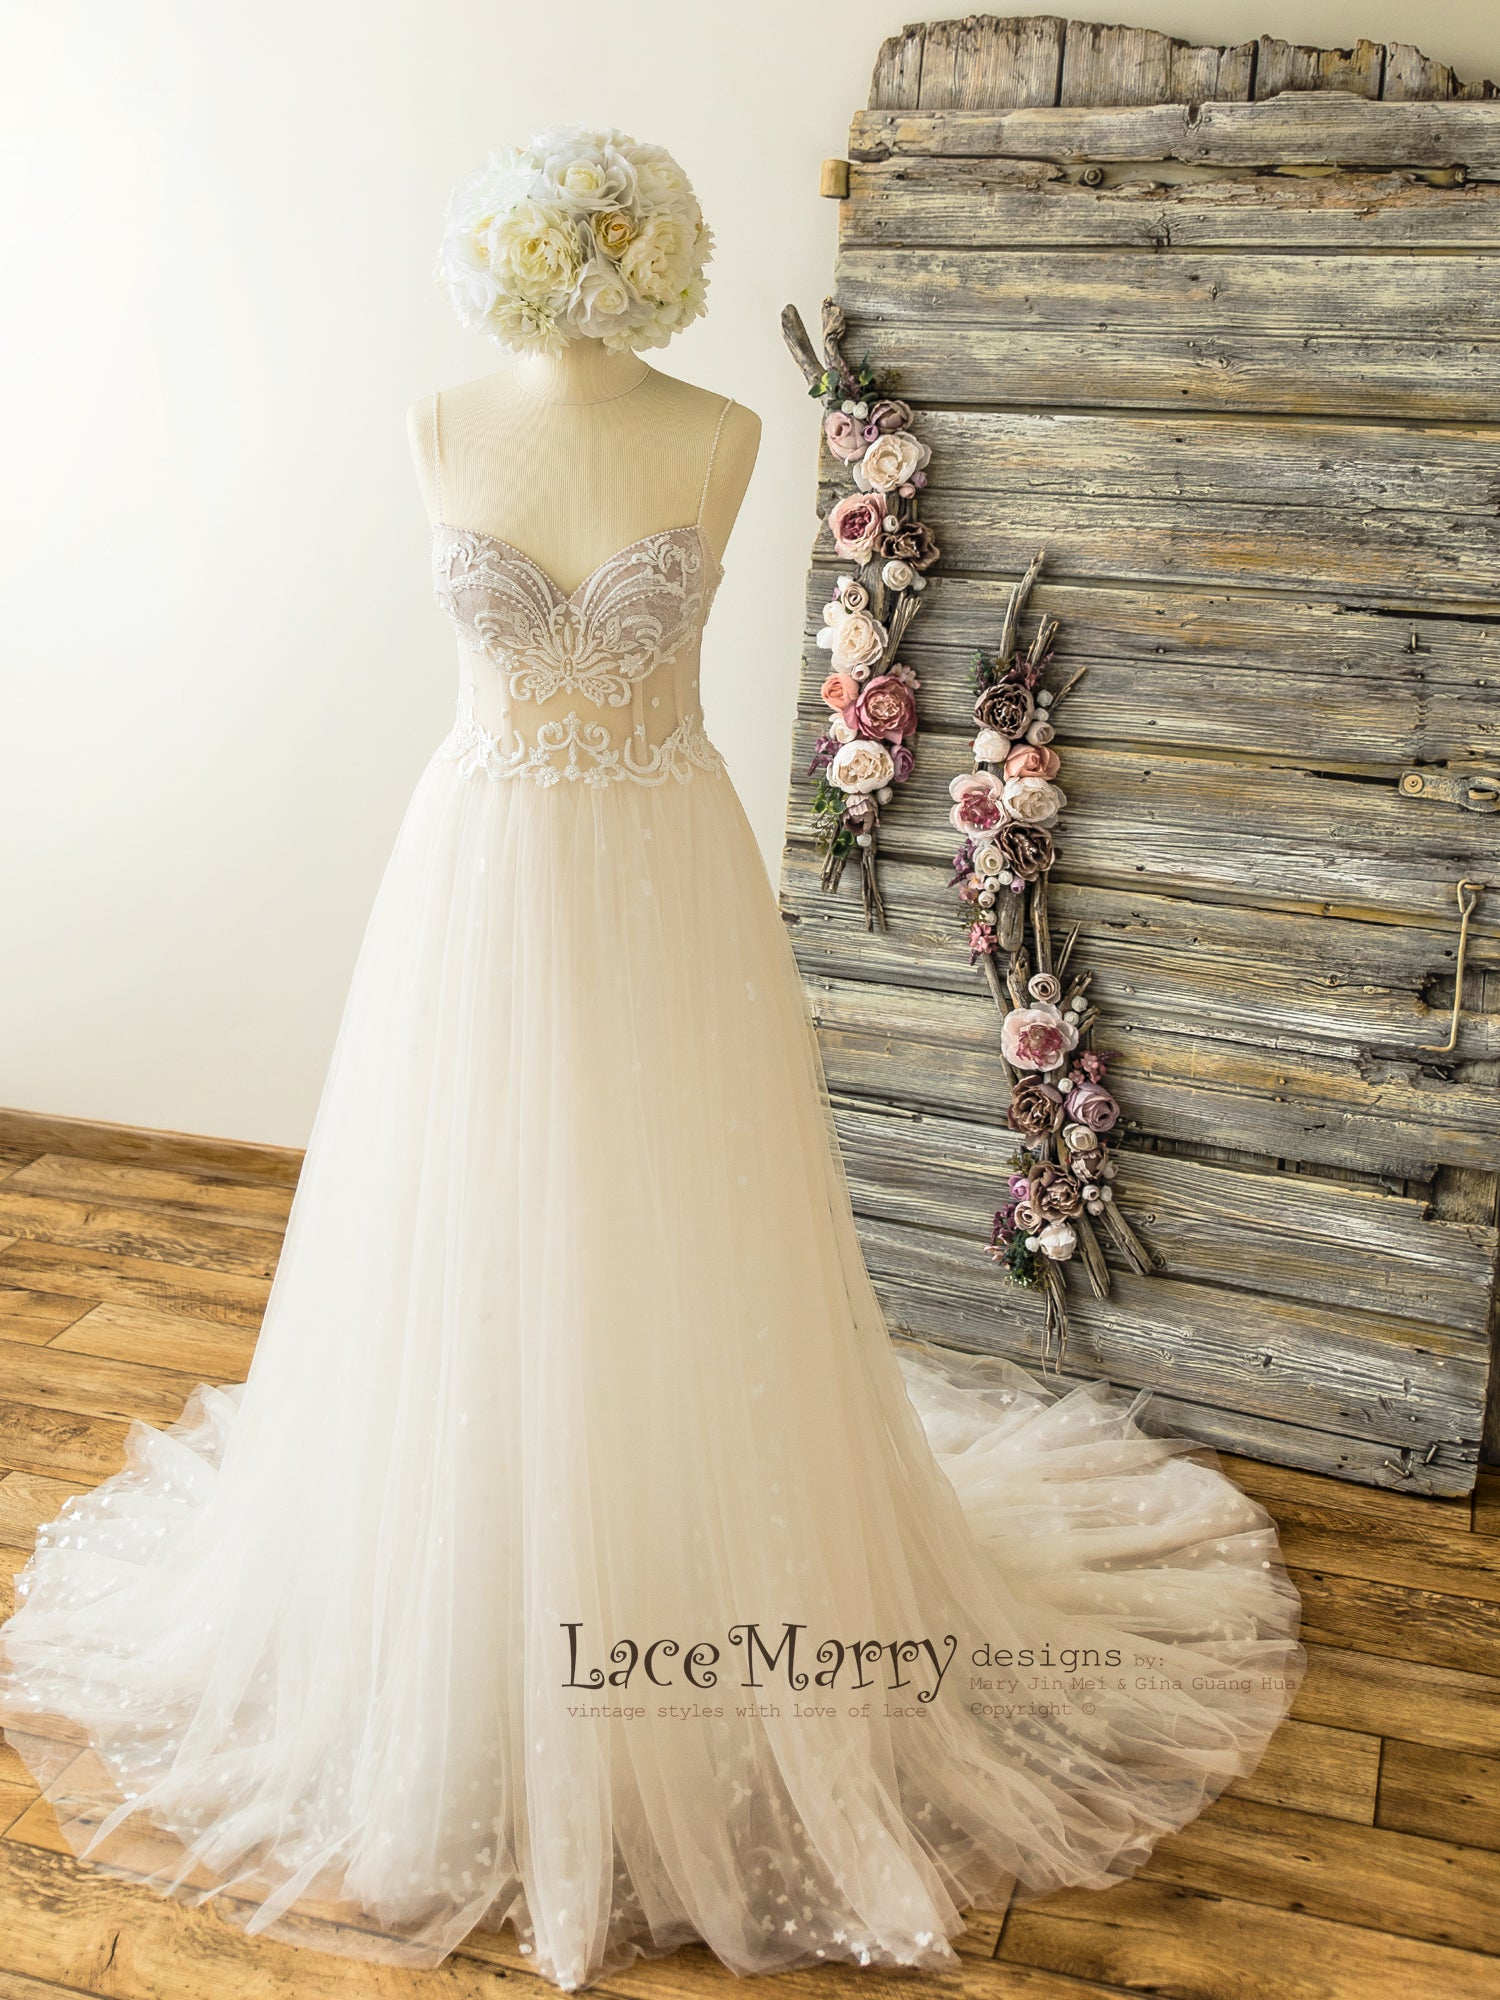 Beautiful Summer Wedding Dress with Beaded Swirl Lace